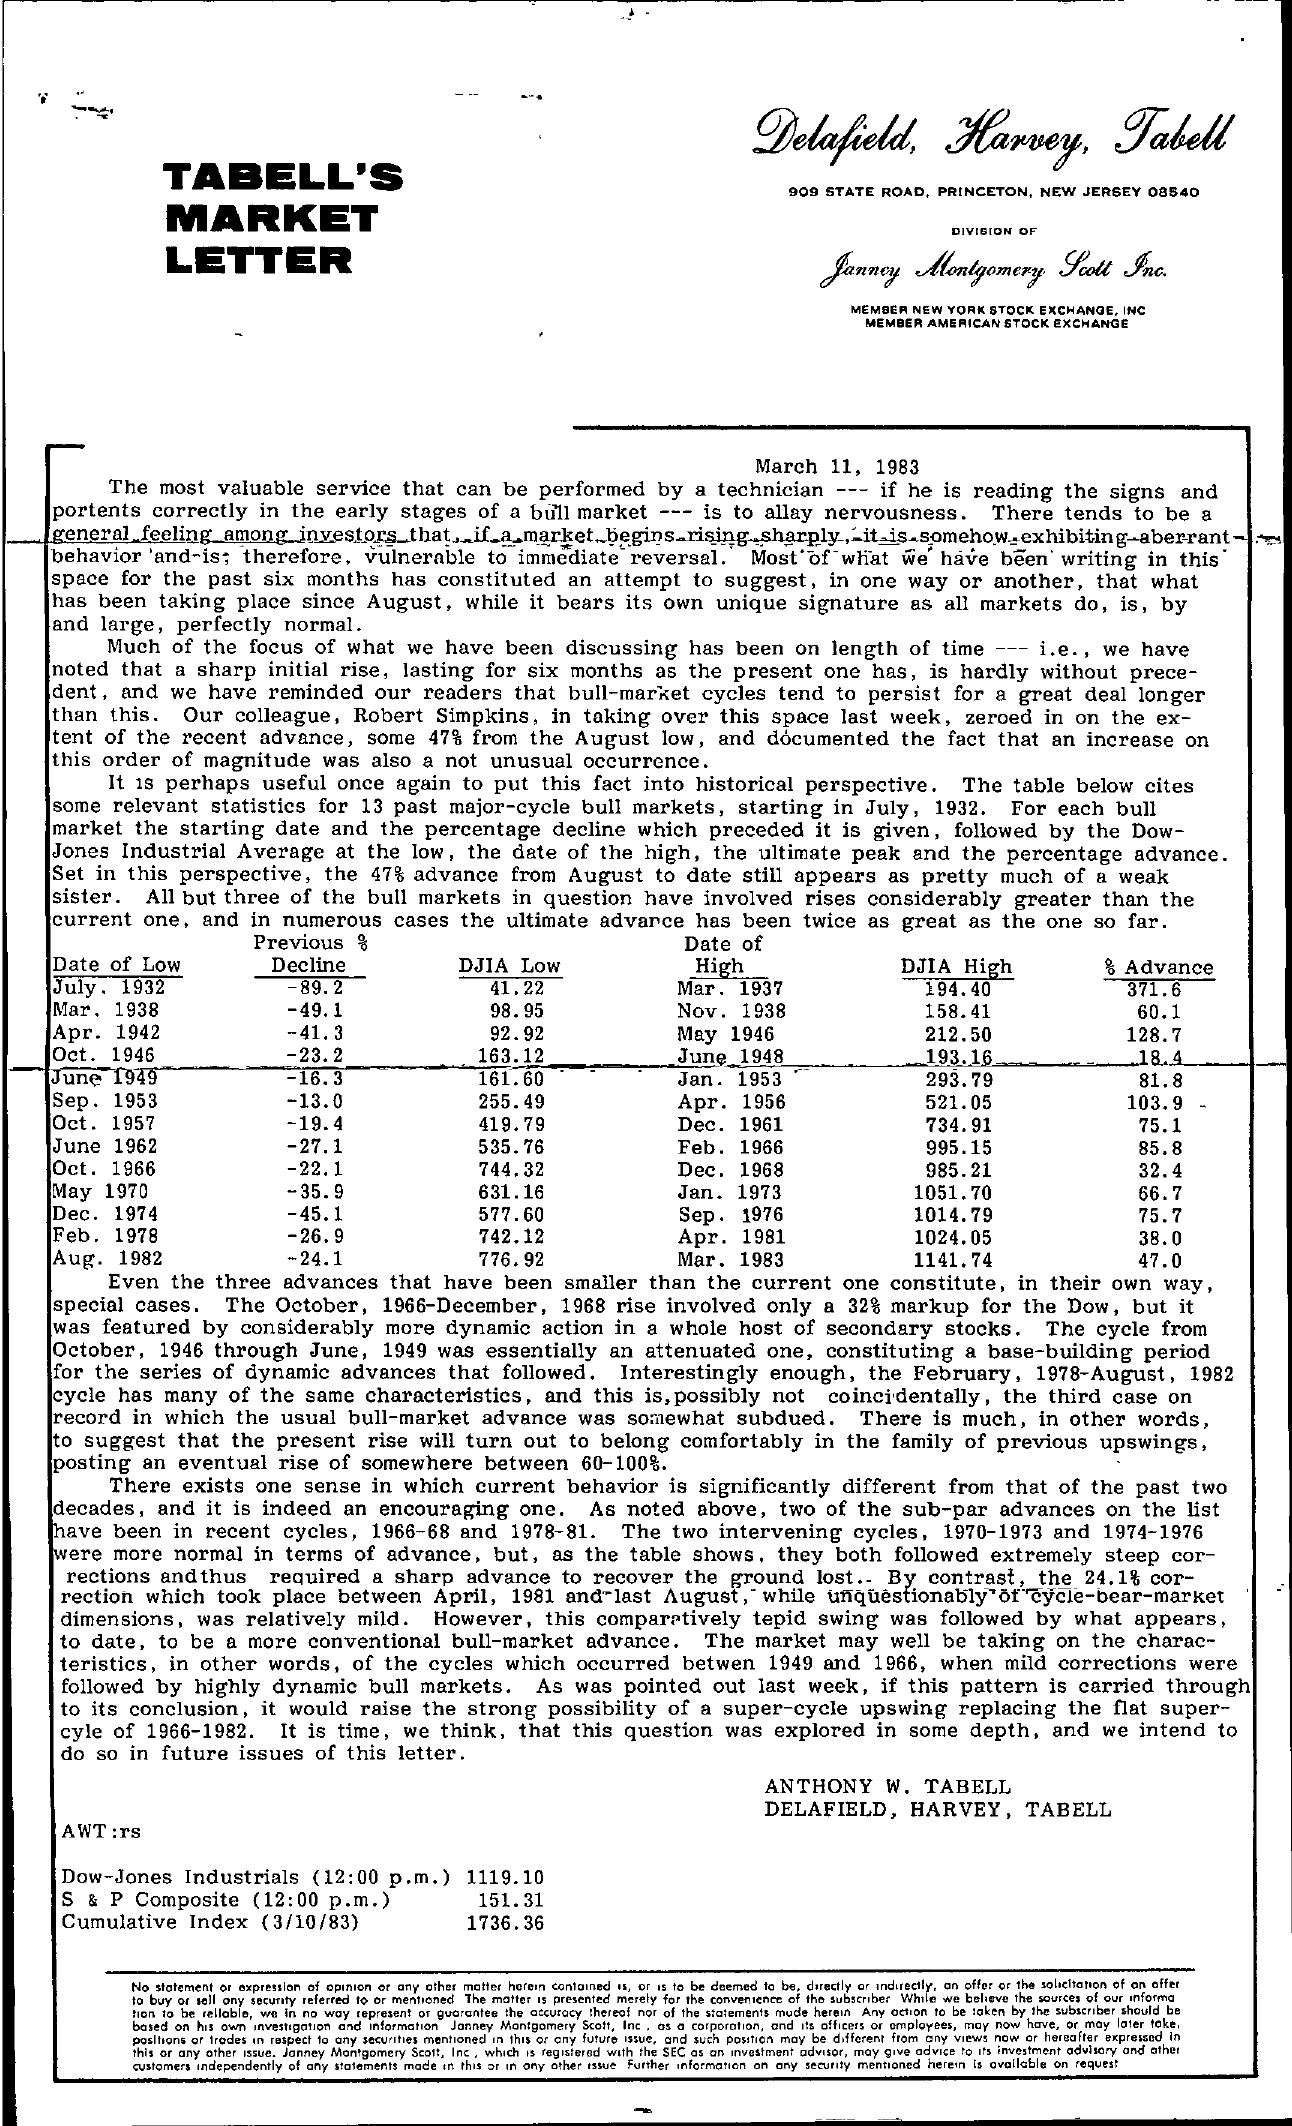 Tabell's Market Letter - March 11, 1983